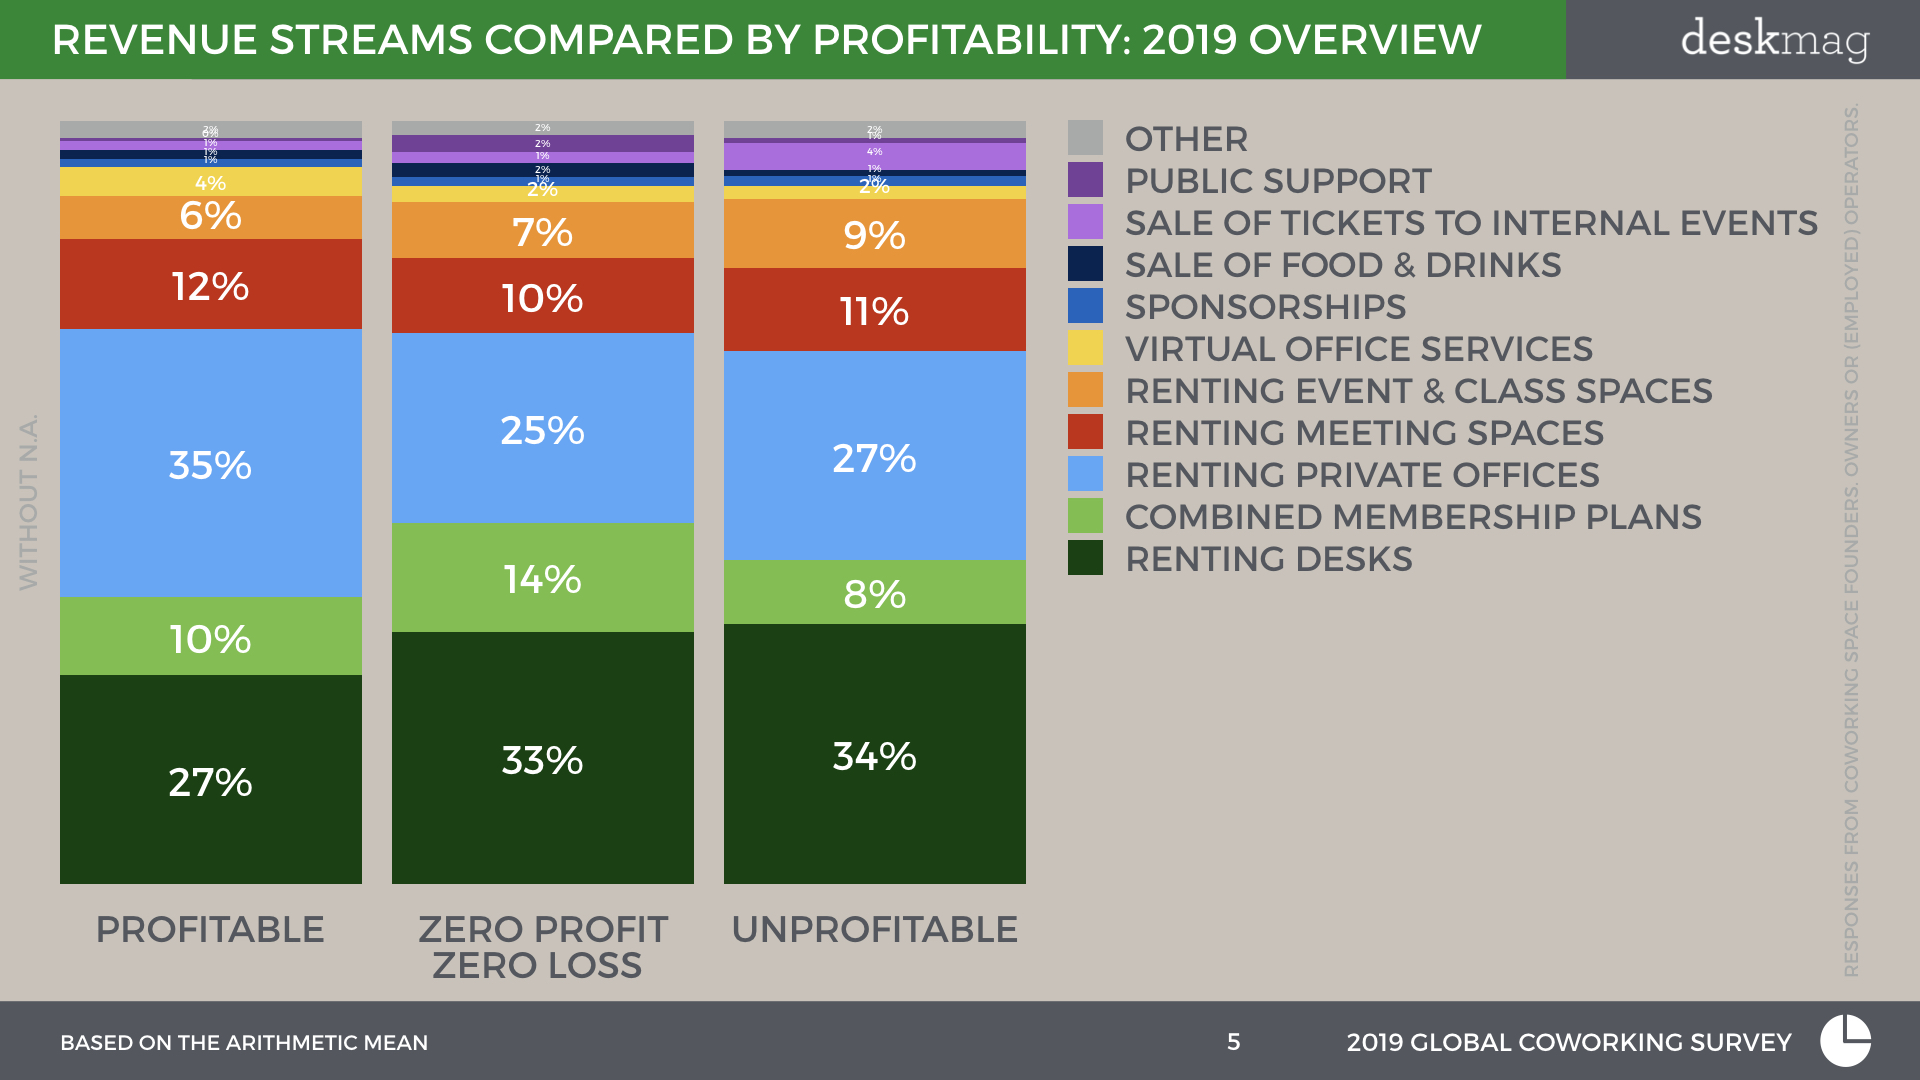 Revenue streams of coworking spaces compared by their profitability status